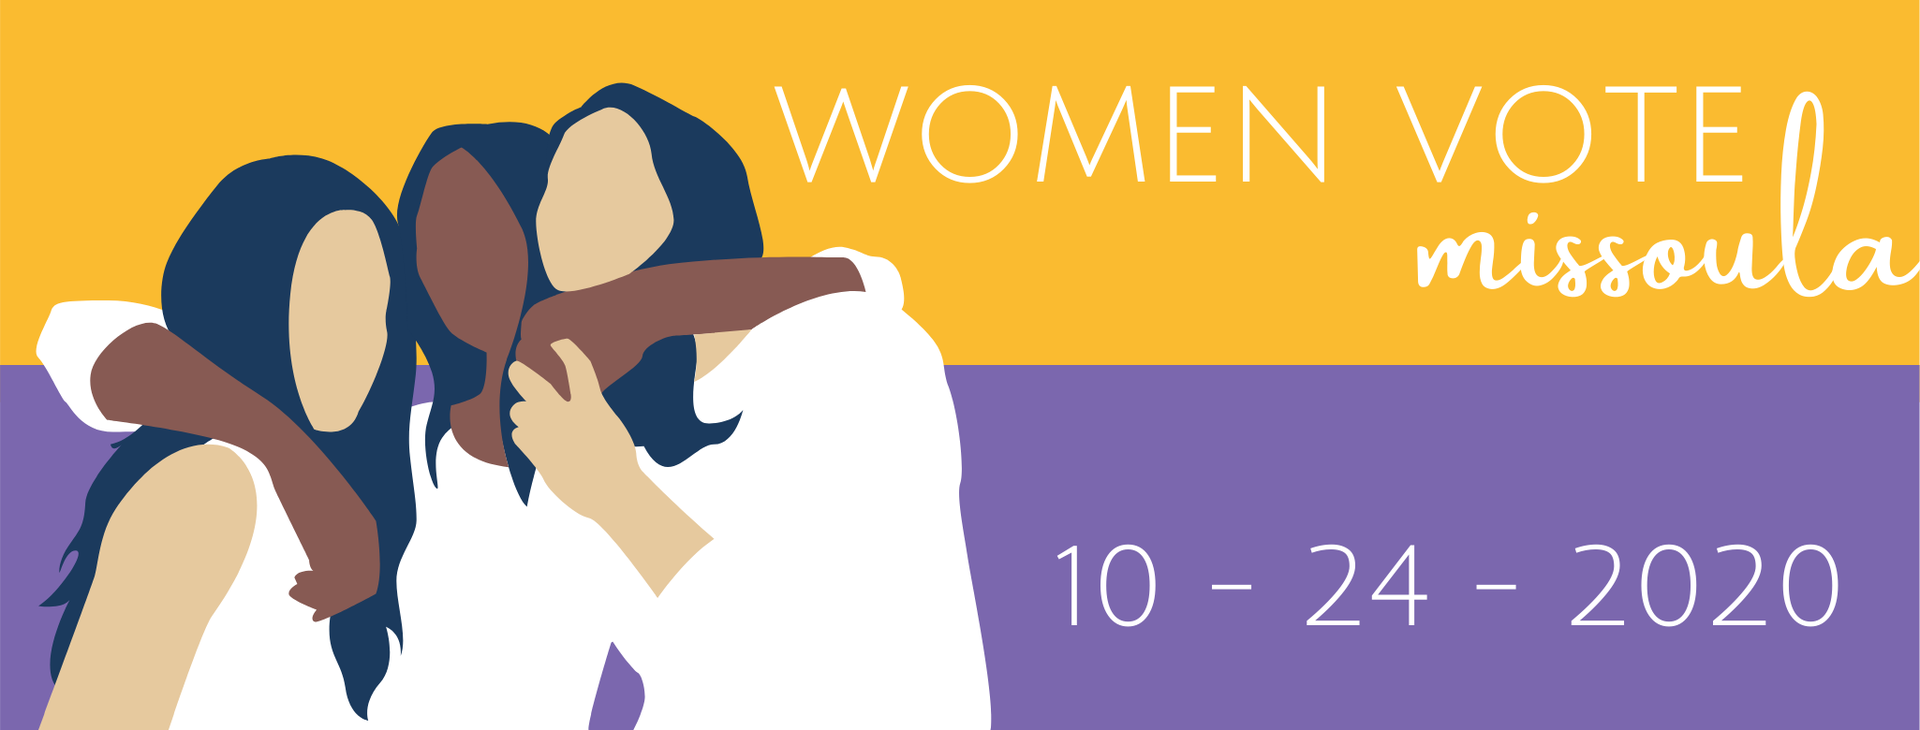 images of women to celebrate 100th anniversary of 19th amendment